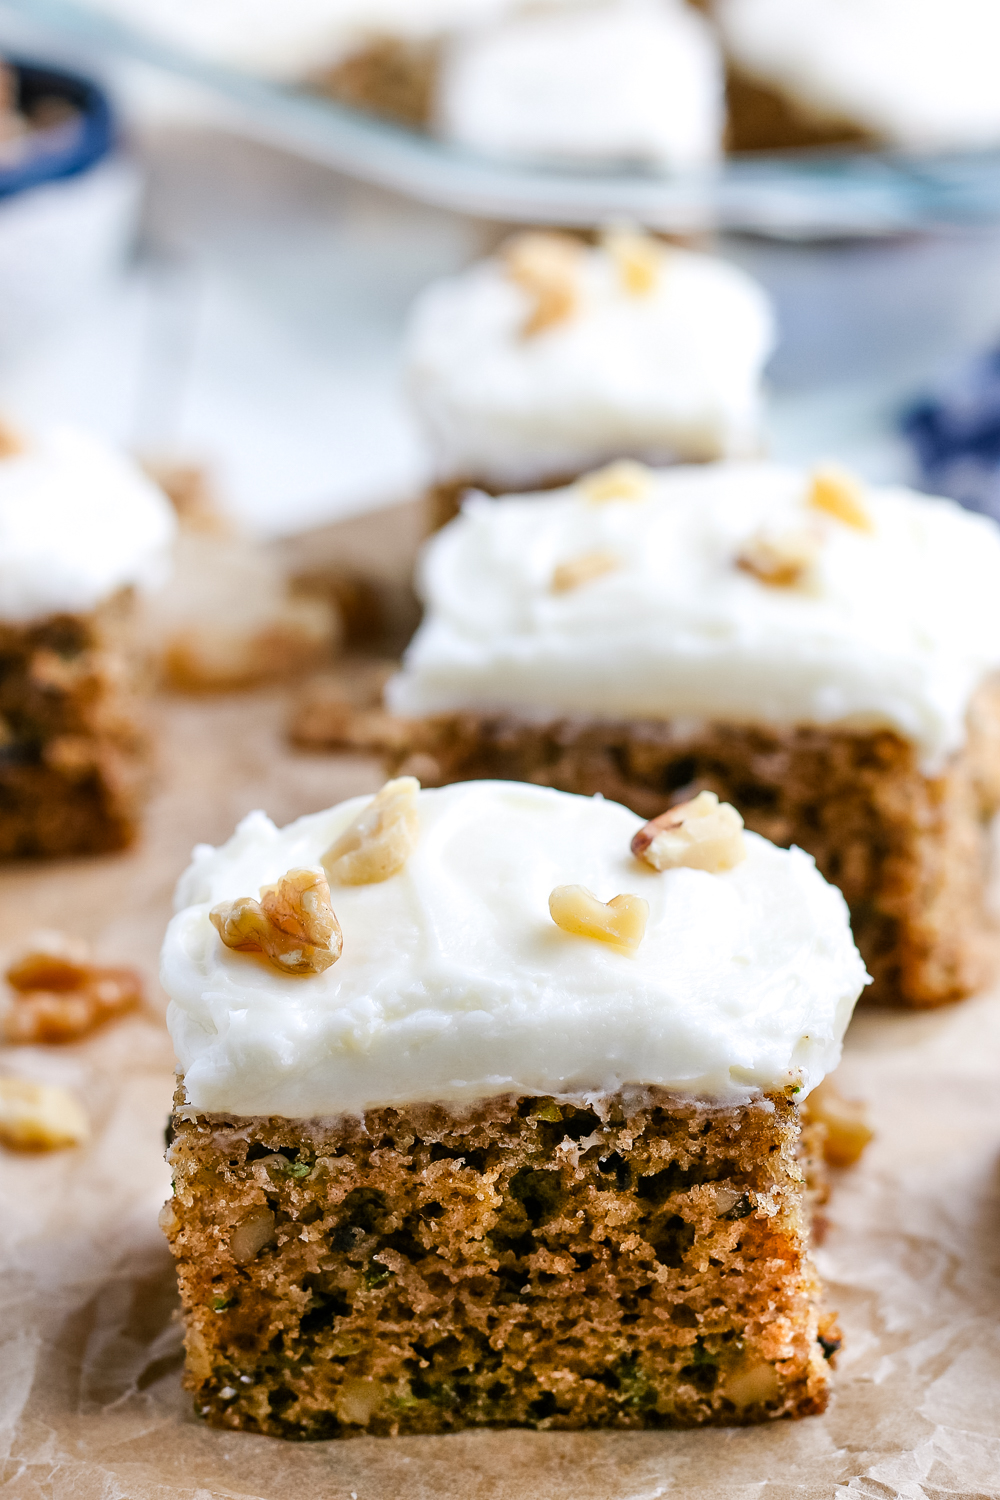 A slice of the finished Zucchini Cake With Cream Cheese Frosting.